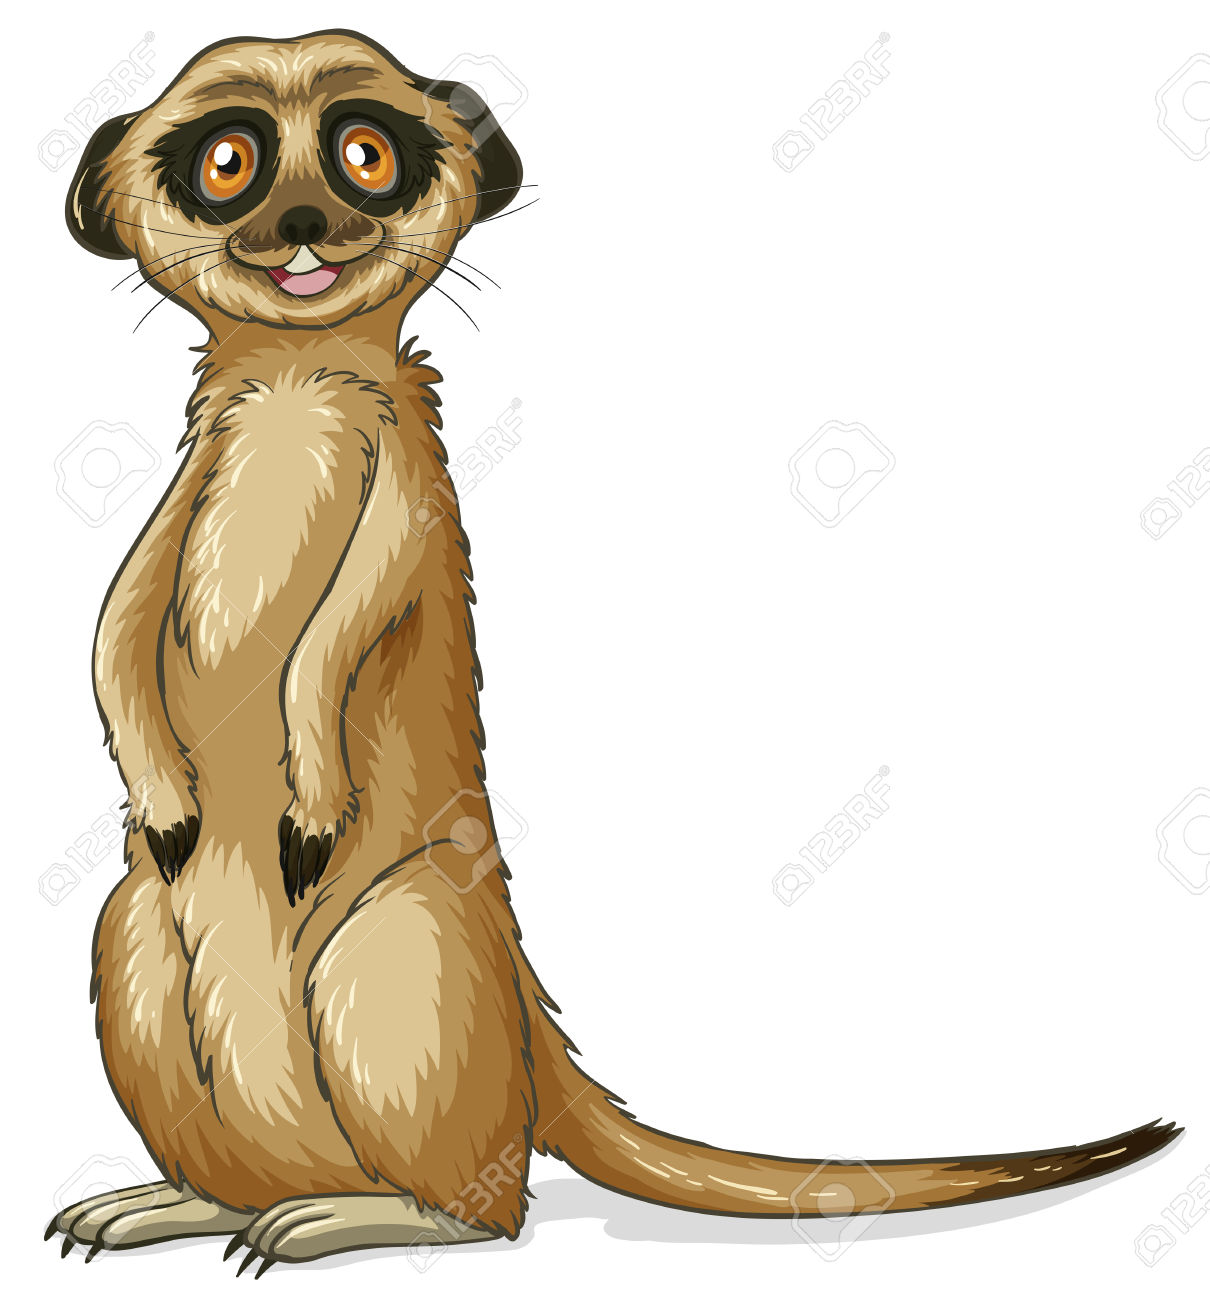 Illustration D'un Gros Plan Suricate Clip Art Libres De Droits.